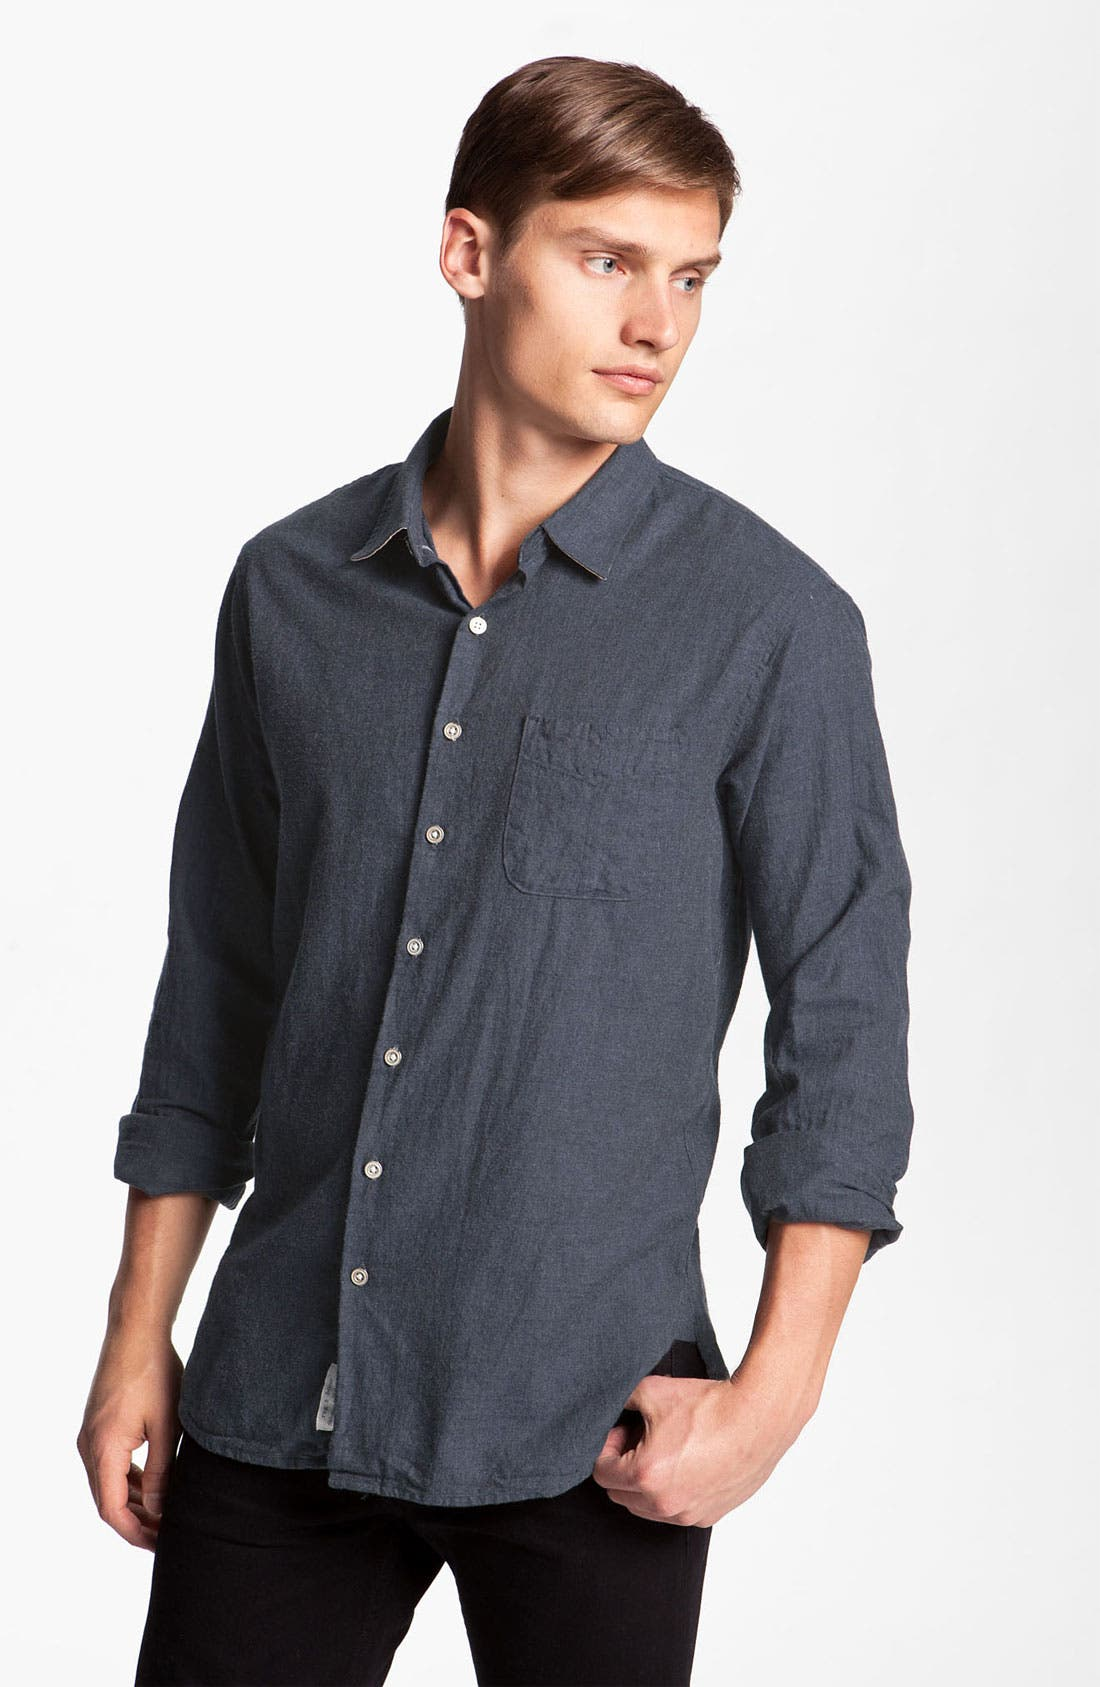 Alternate Image 1 Selected - rag & bone 'Beach' Woven Shirt